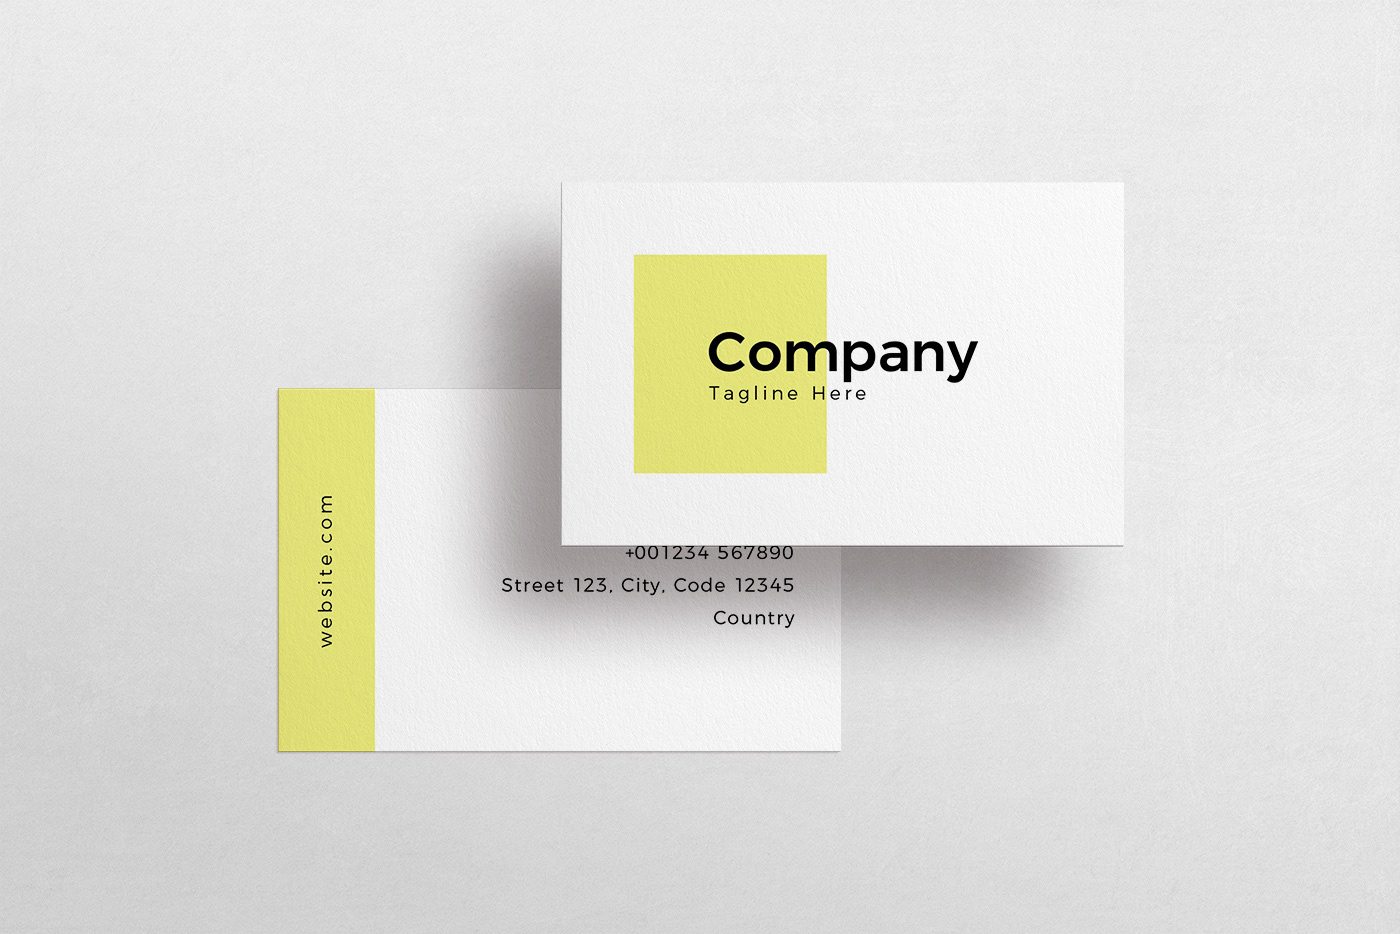 Image may contain: businesscard, post-it note and typography